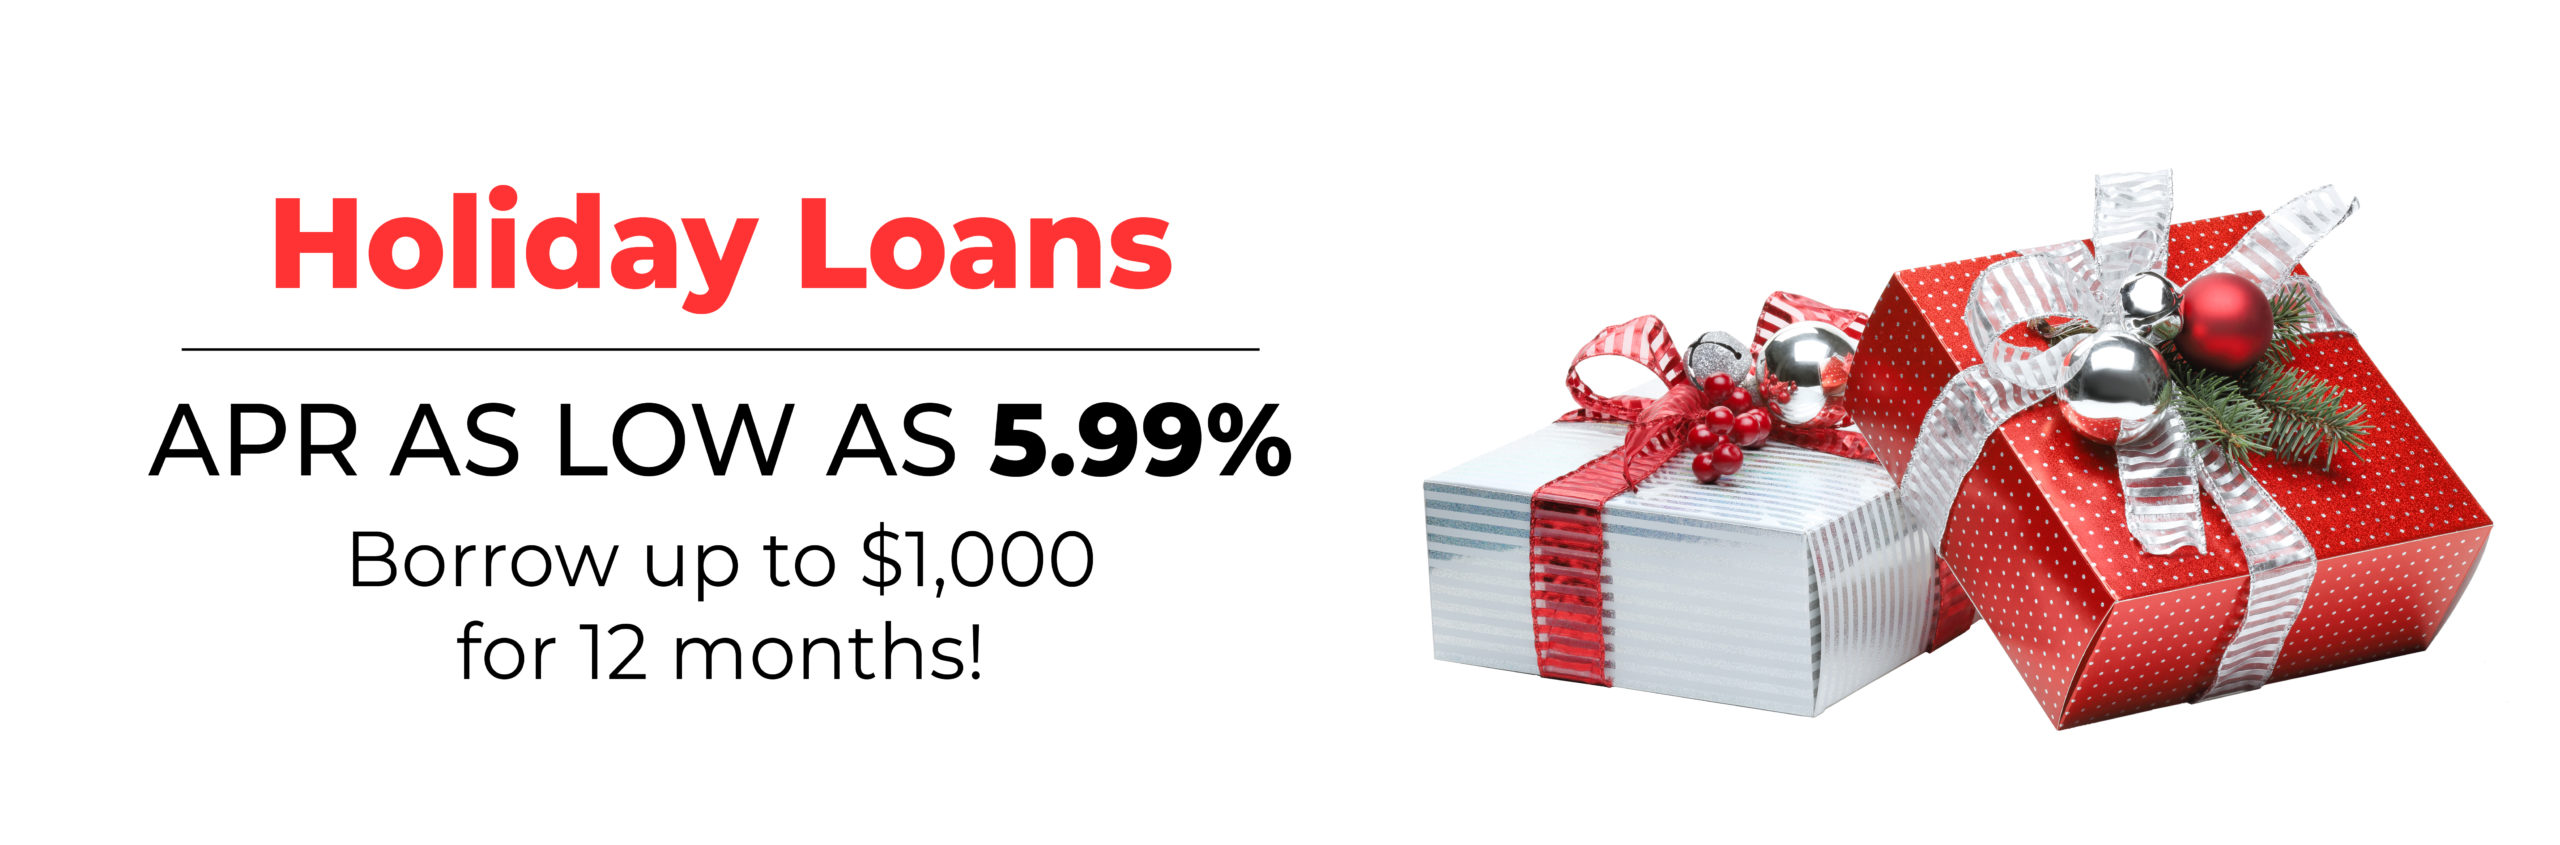 Holiday Loan Banner - Winter 2019